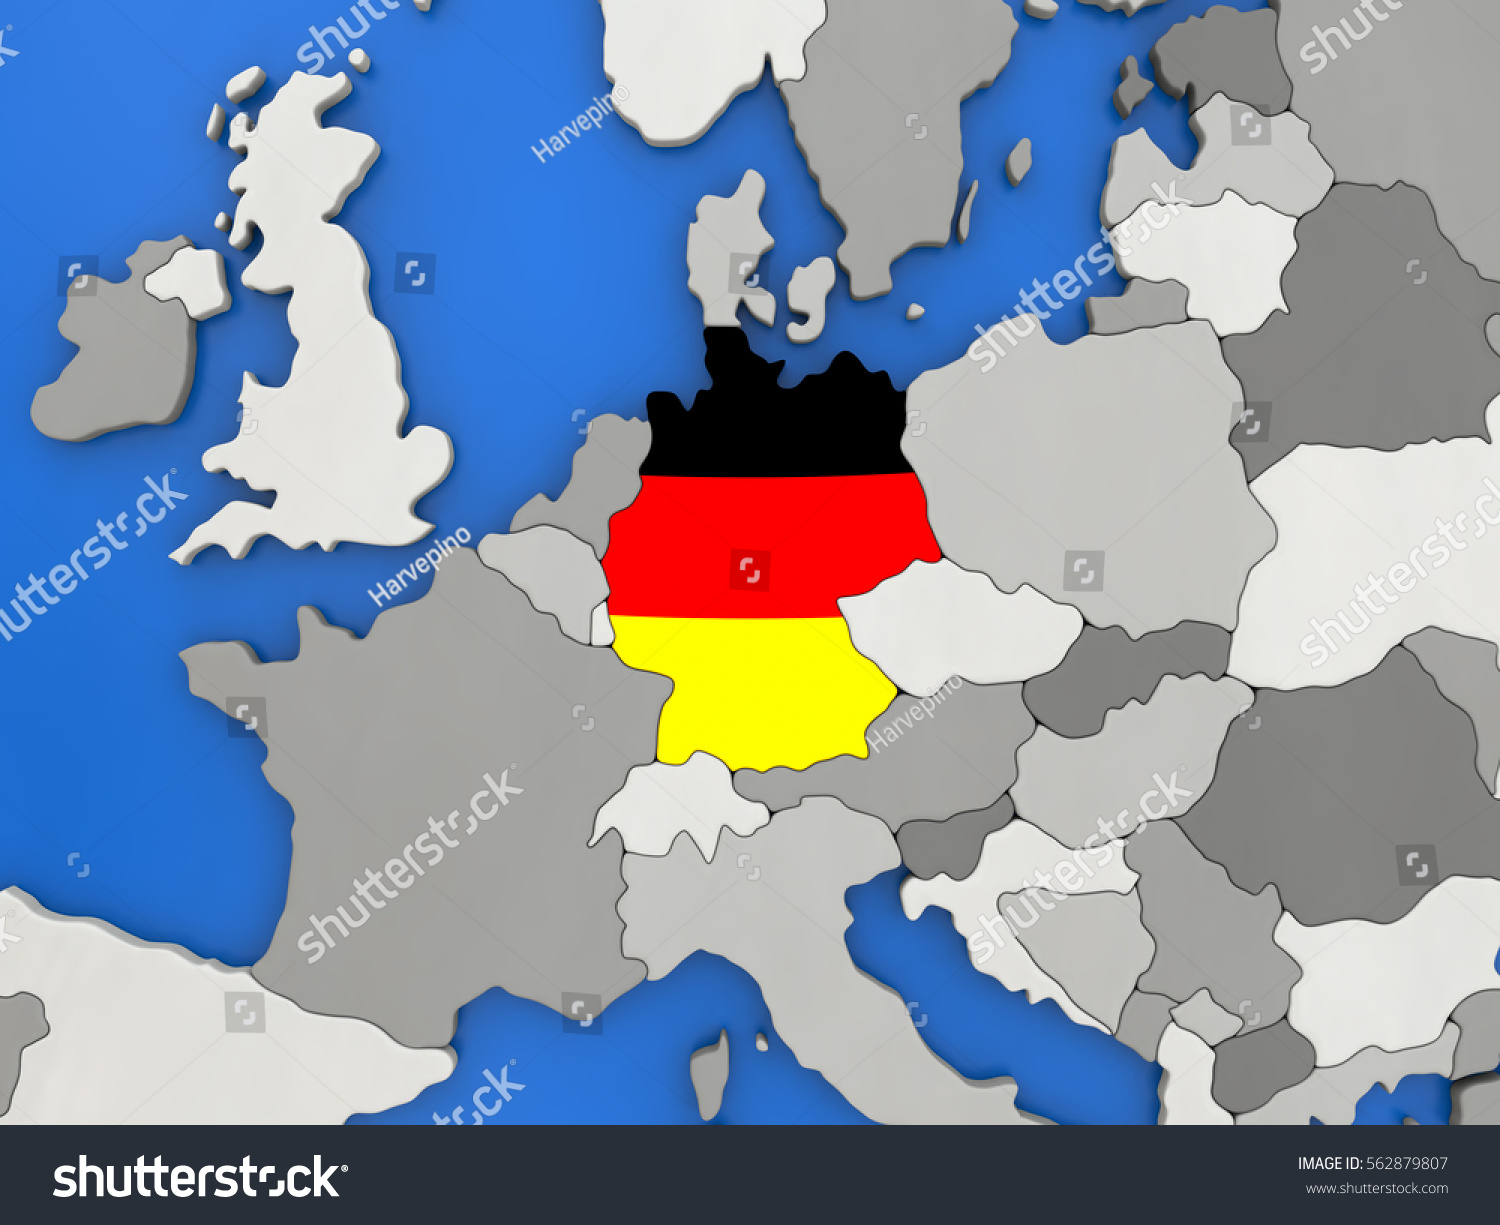 Map Germany Embedded National Flag On Stock Illustration - Germany map view